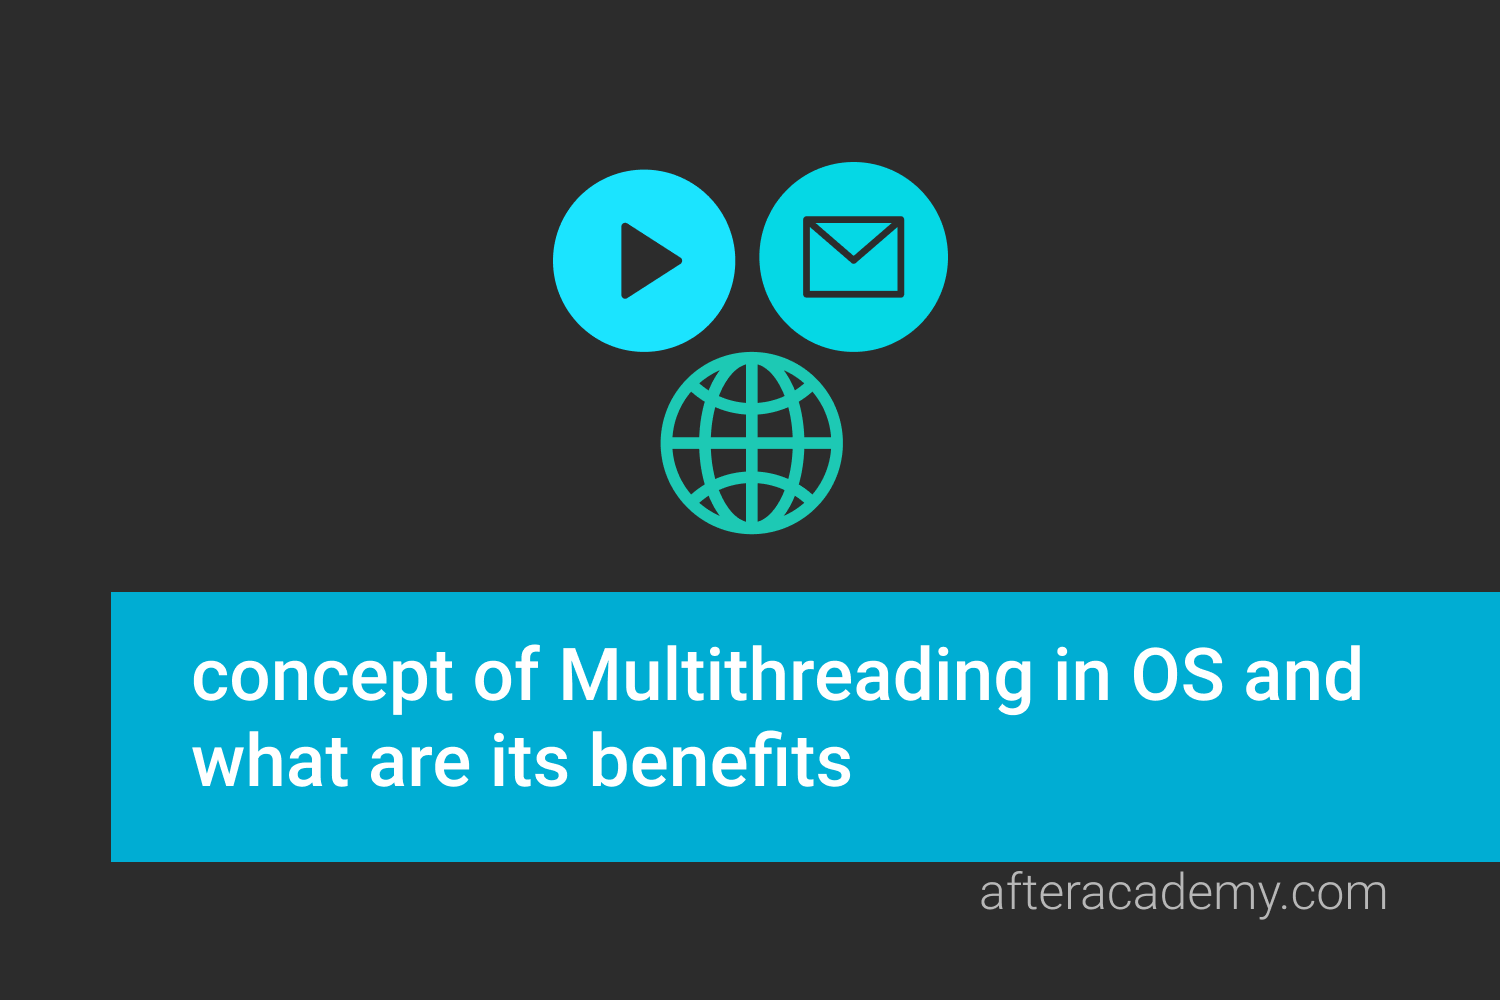 What is the concept of Multithreading in OS and what are its benefits?